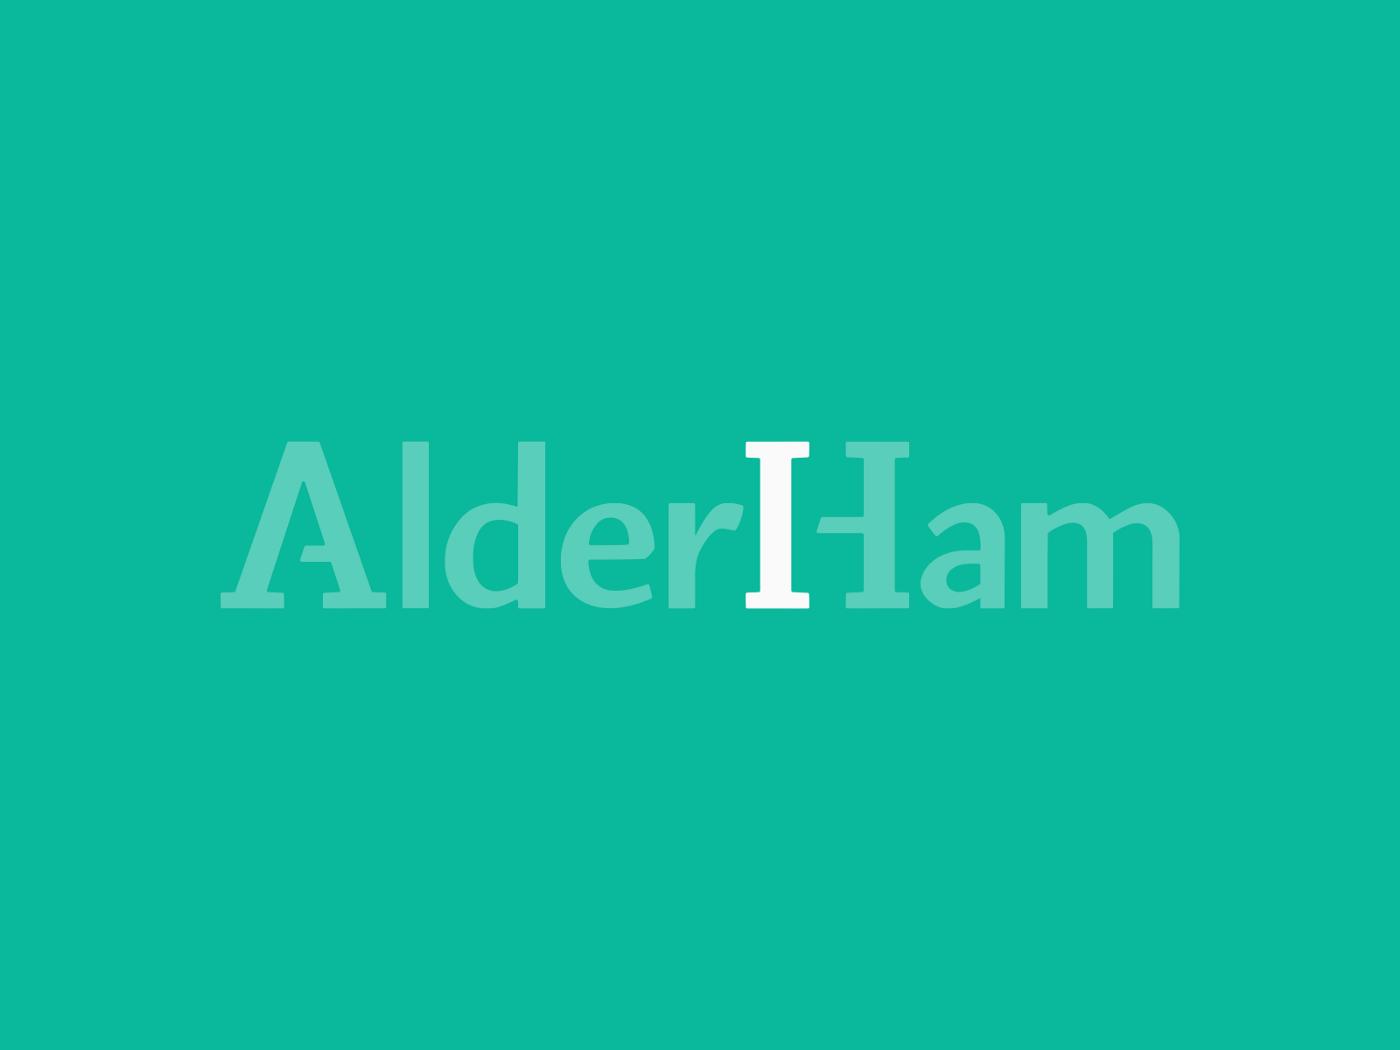 AlderHam Logo on Green With Faded Text!